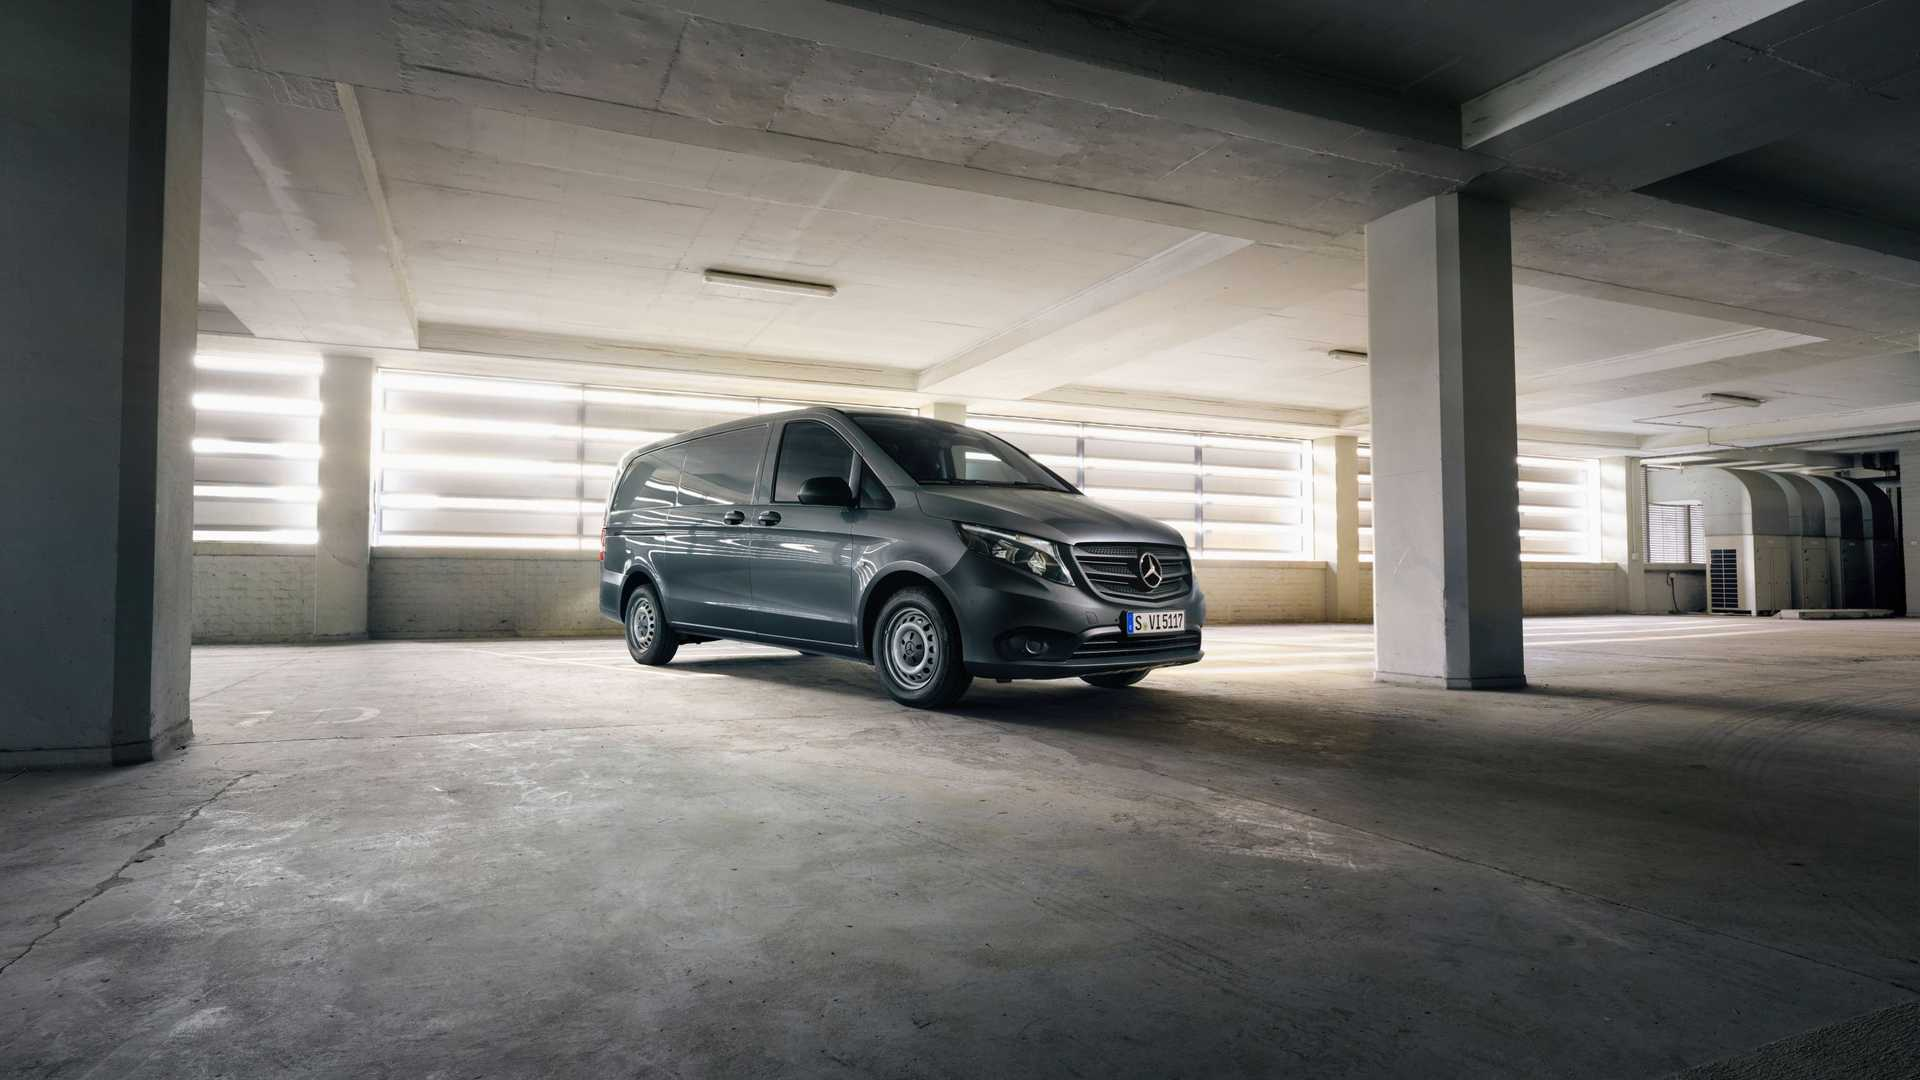 The refreshed Metris/Vito family includes a passenger van, a commercial van and a new campervan that we have already reported on before.